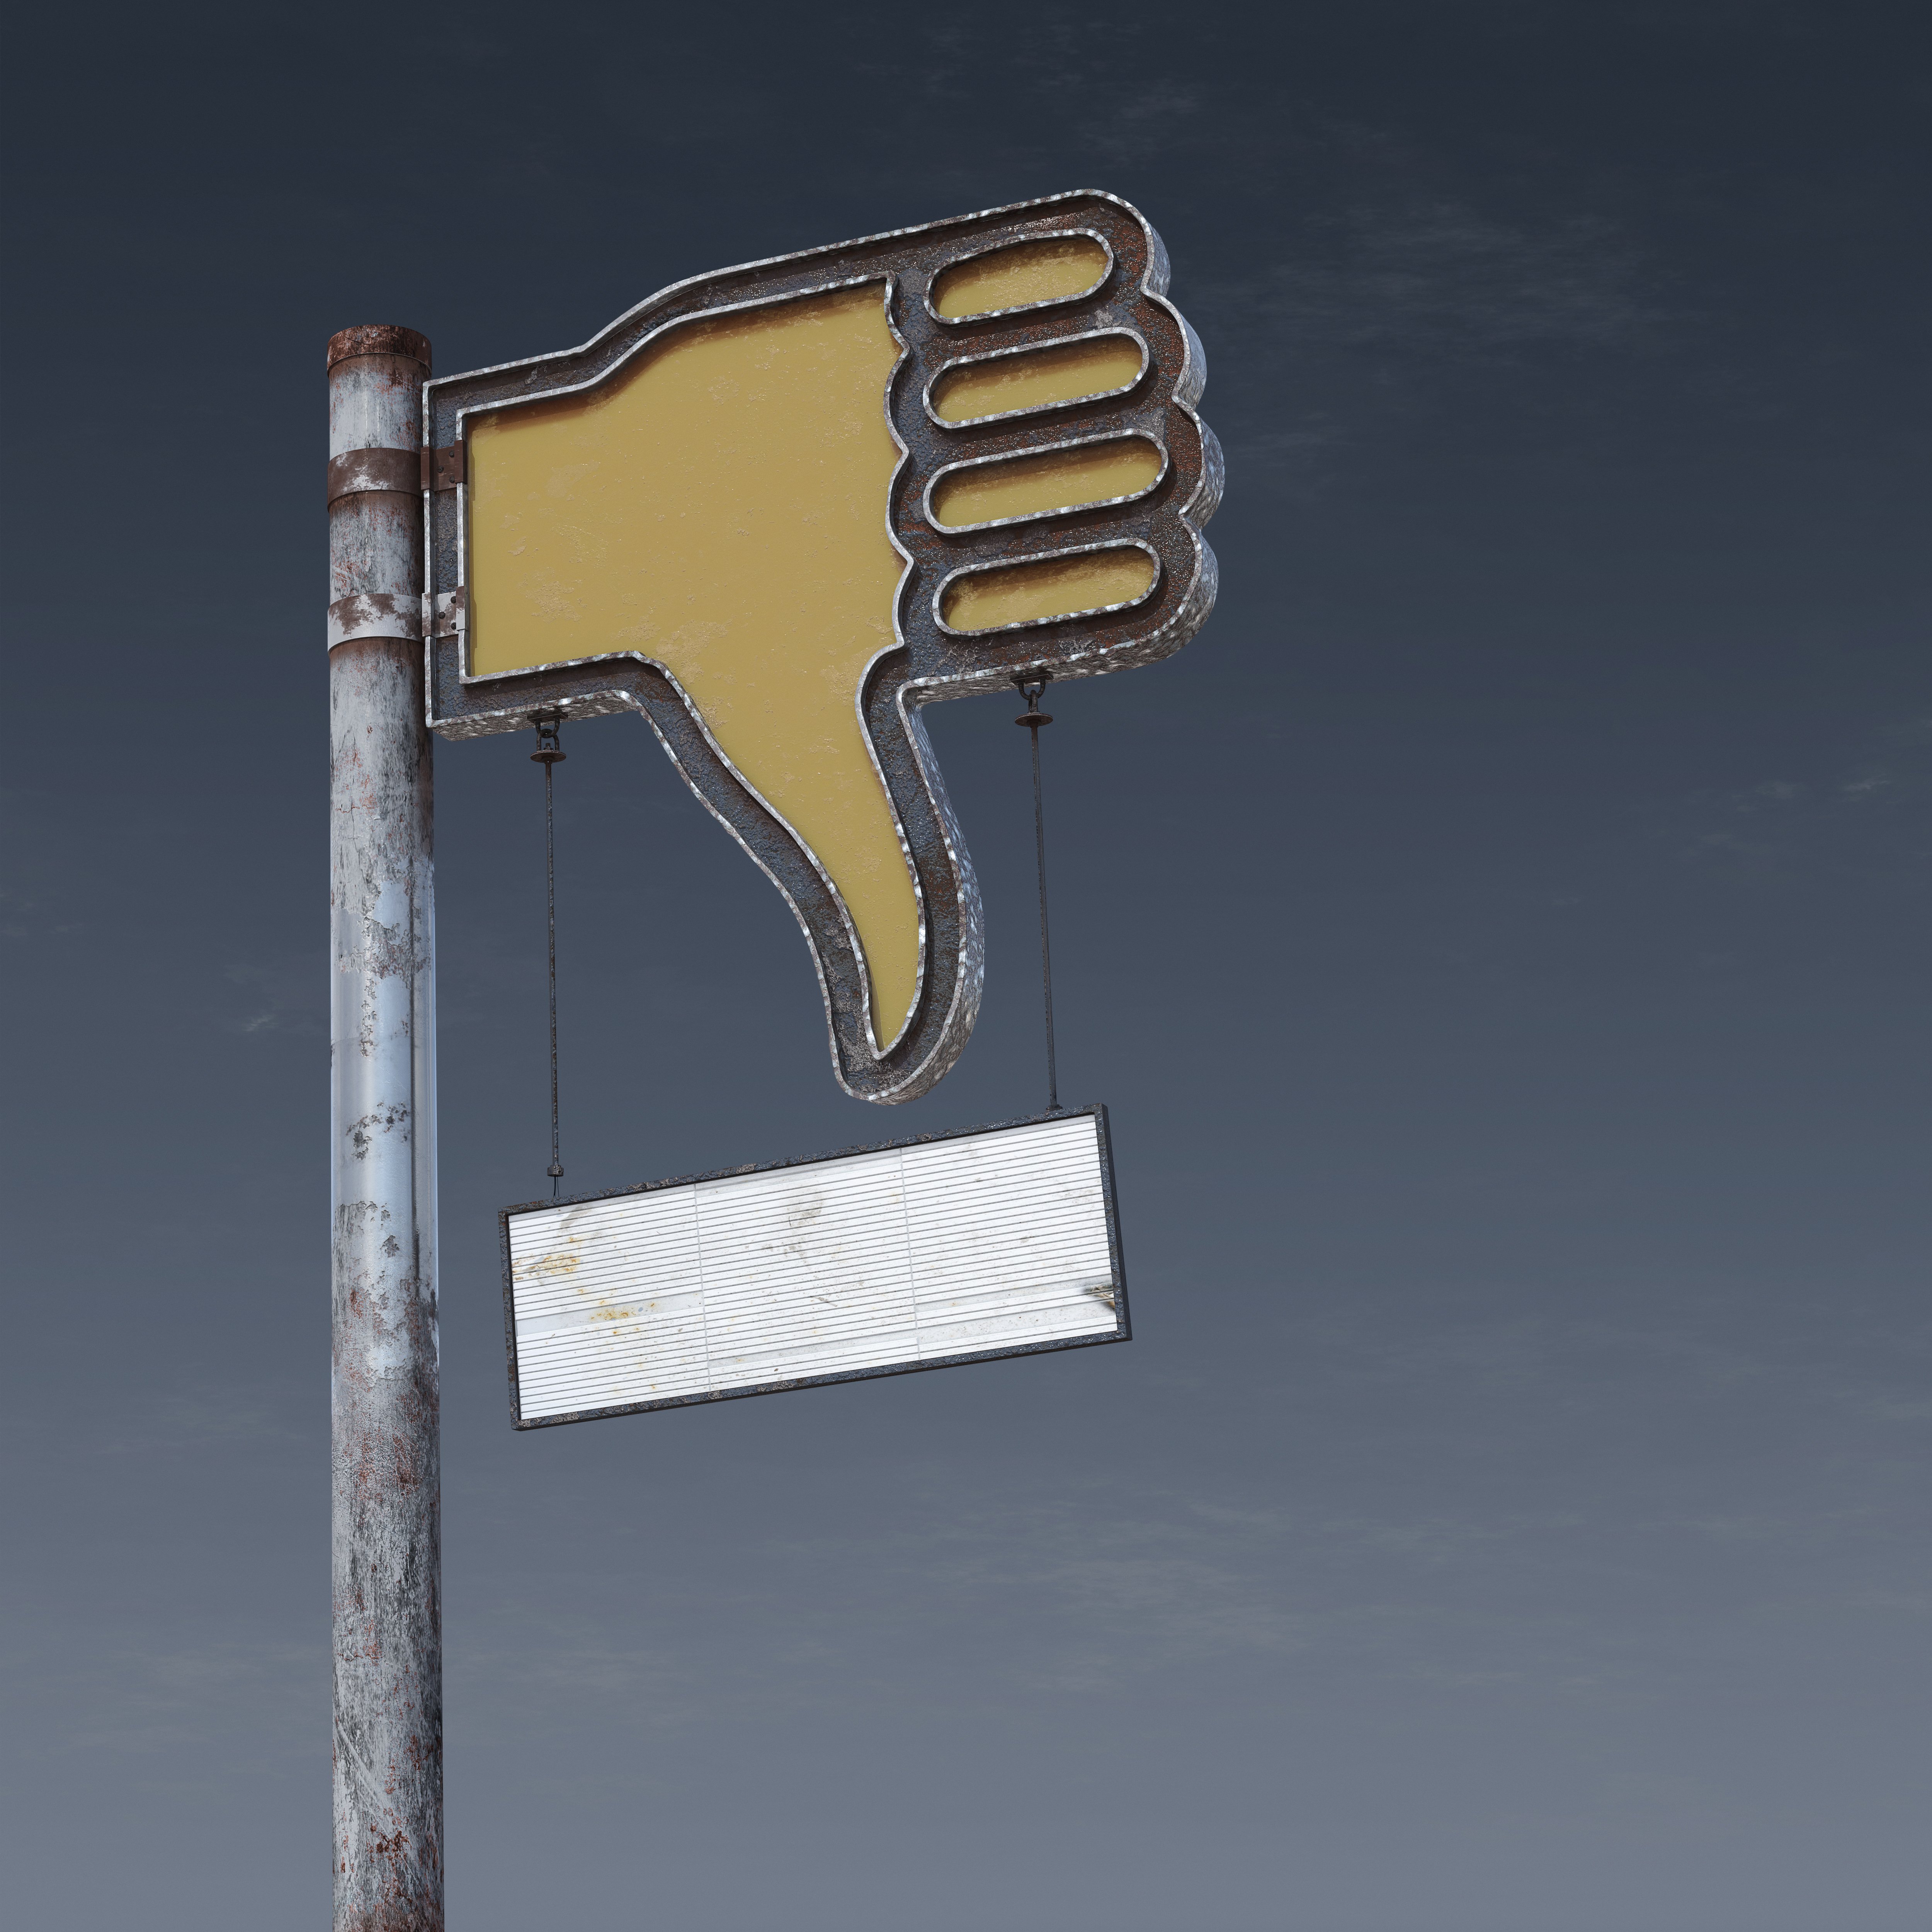 Weathered and rusted thumbs down sign post